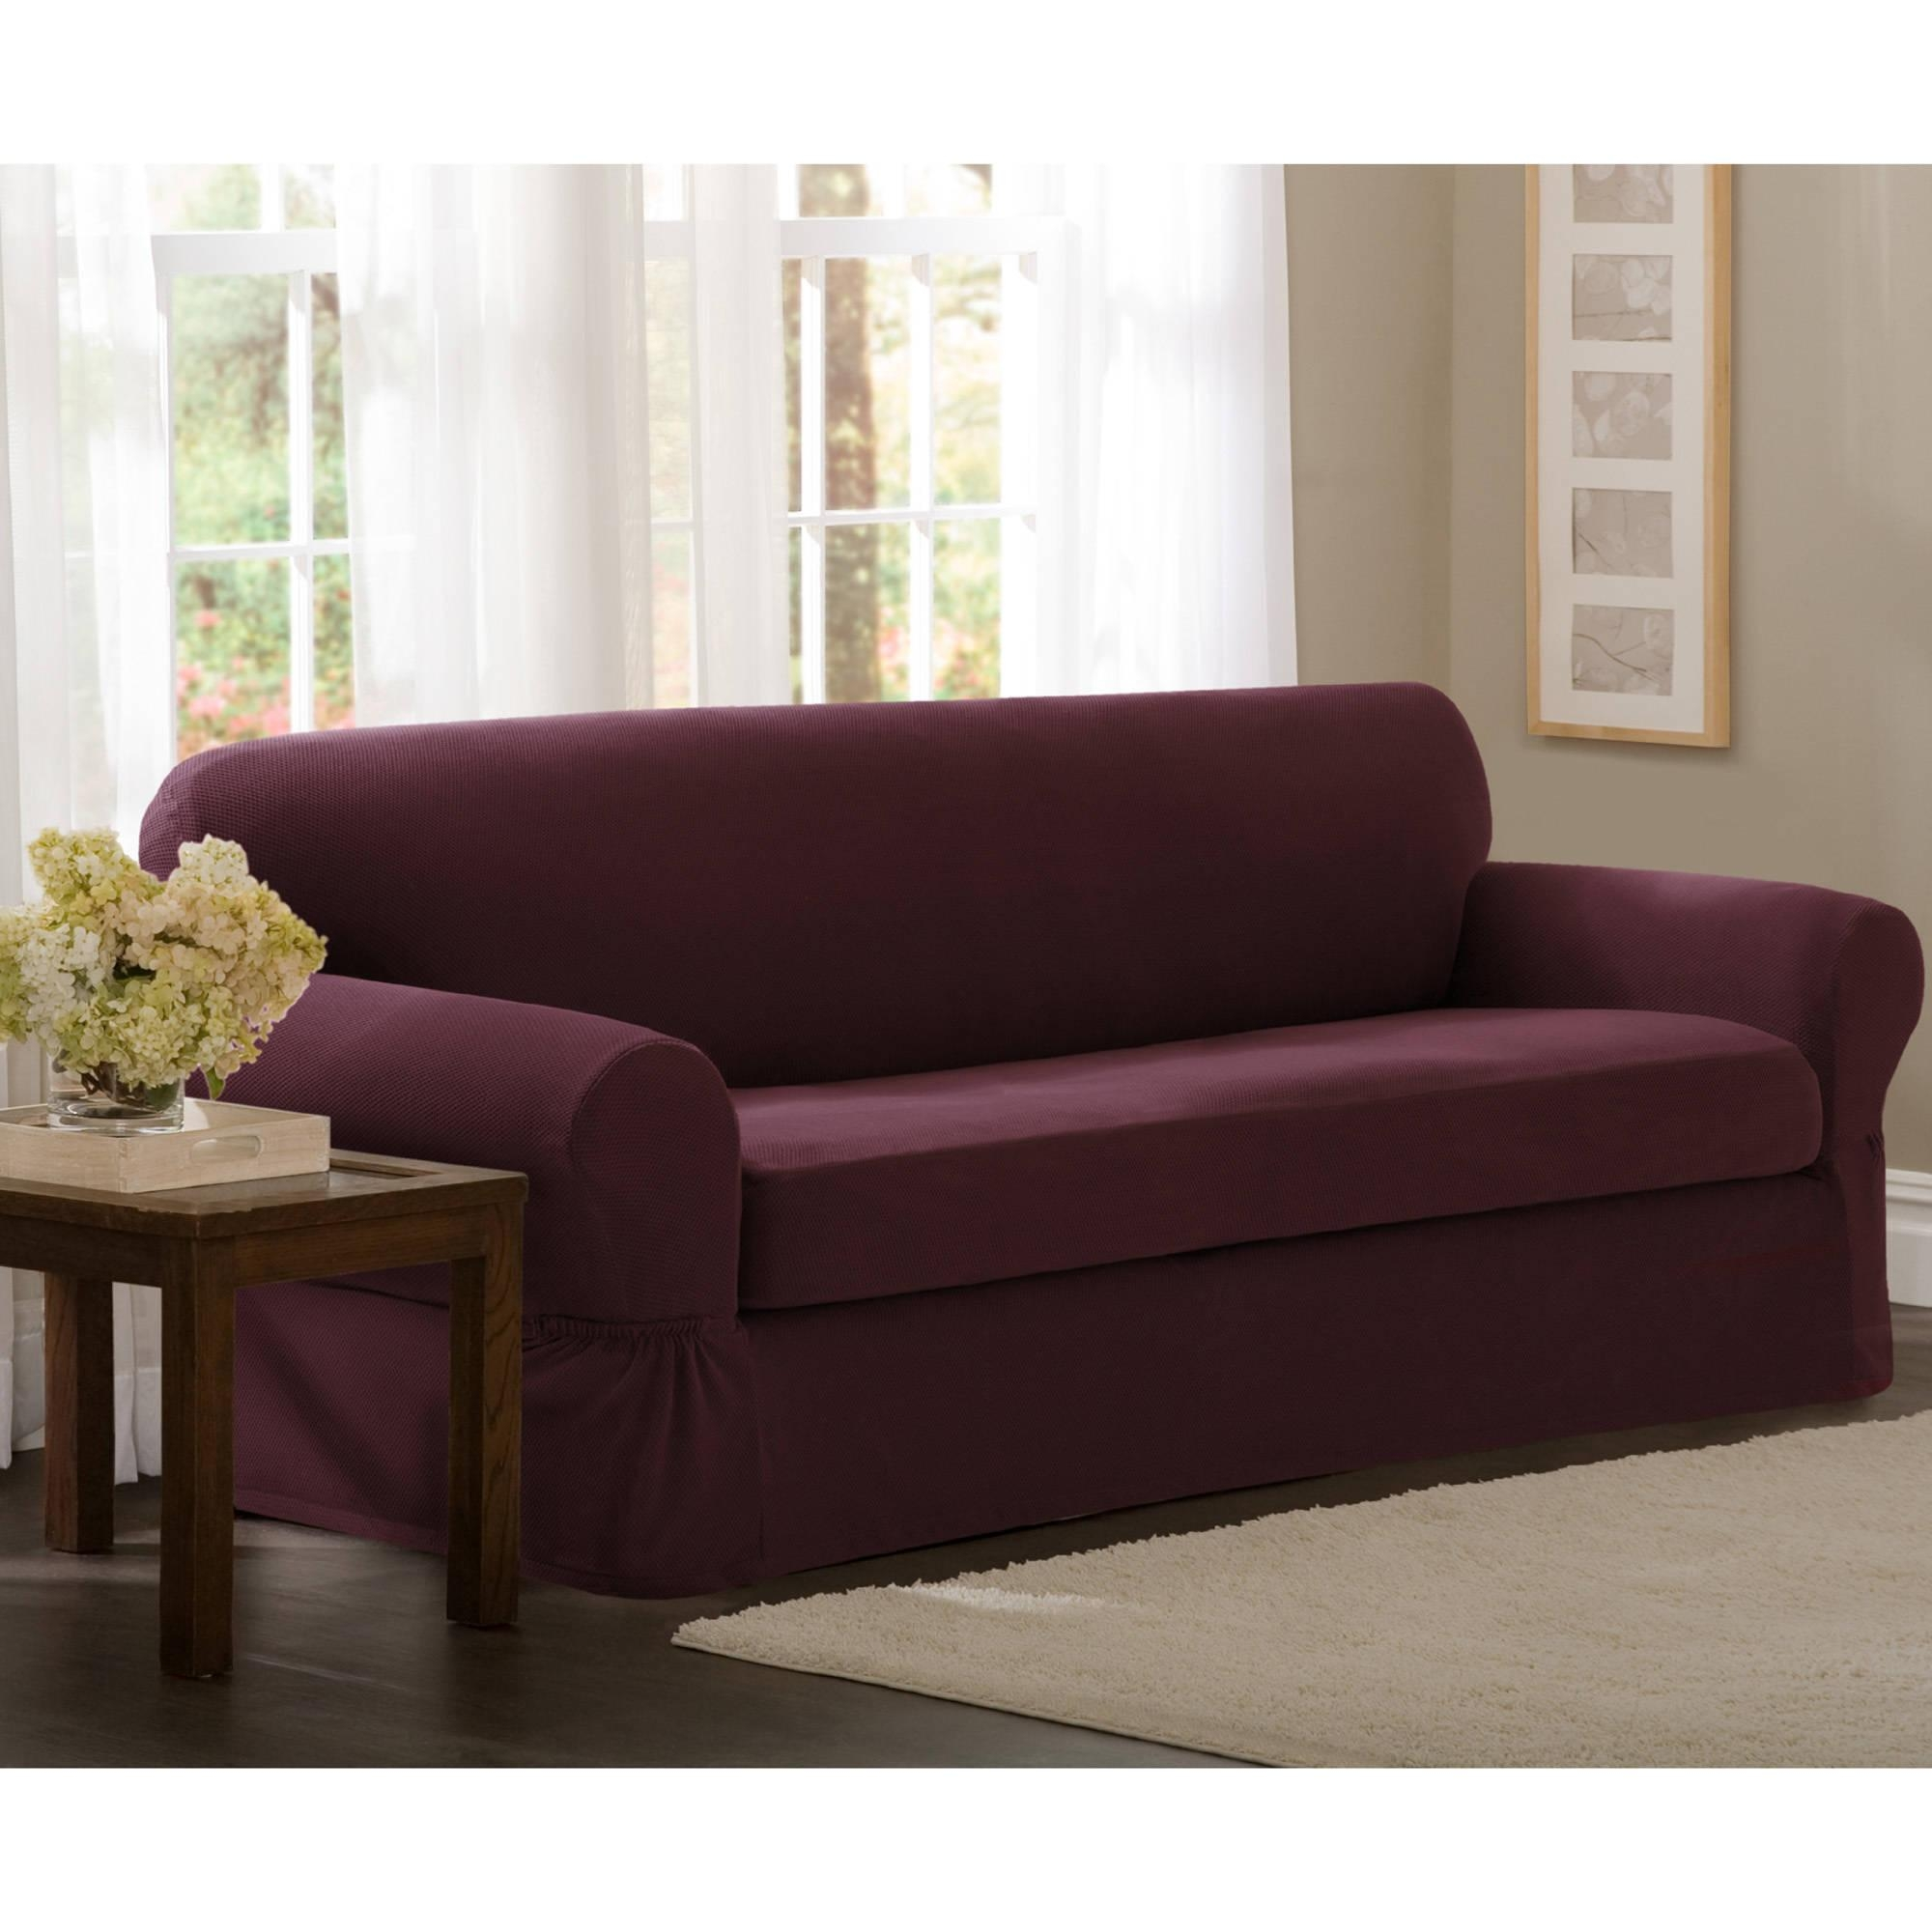 Maytex Stretch 2 Piece Sofa Slipcover – Walmart In Stretch Slipcovers For Sofas (Image 10 of 20)